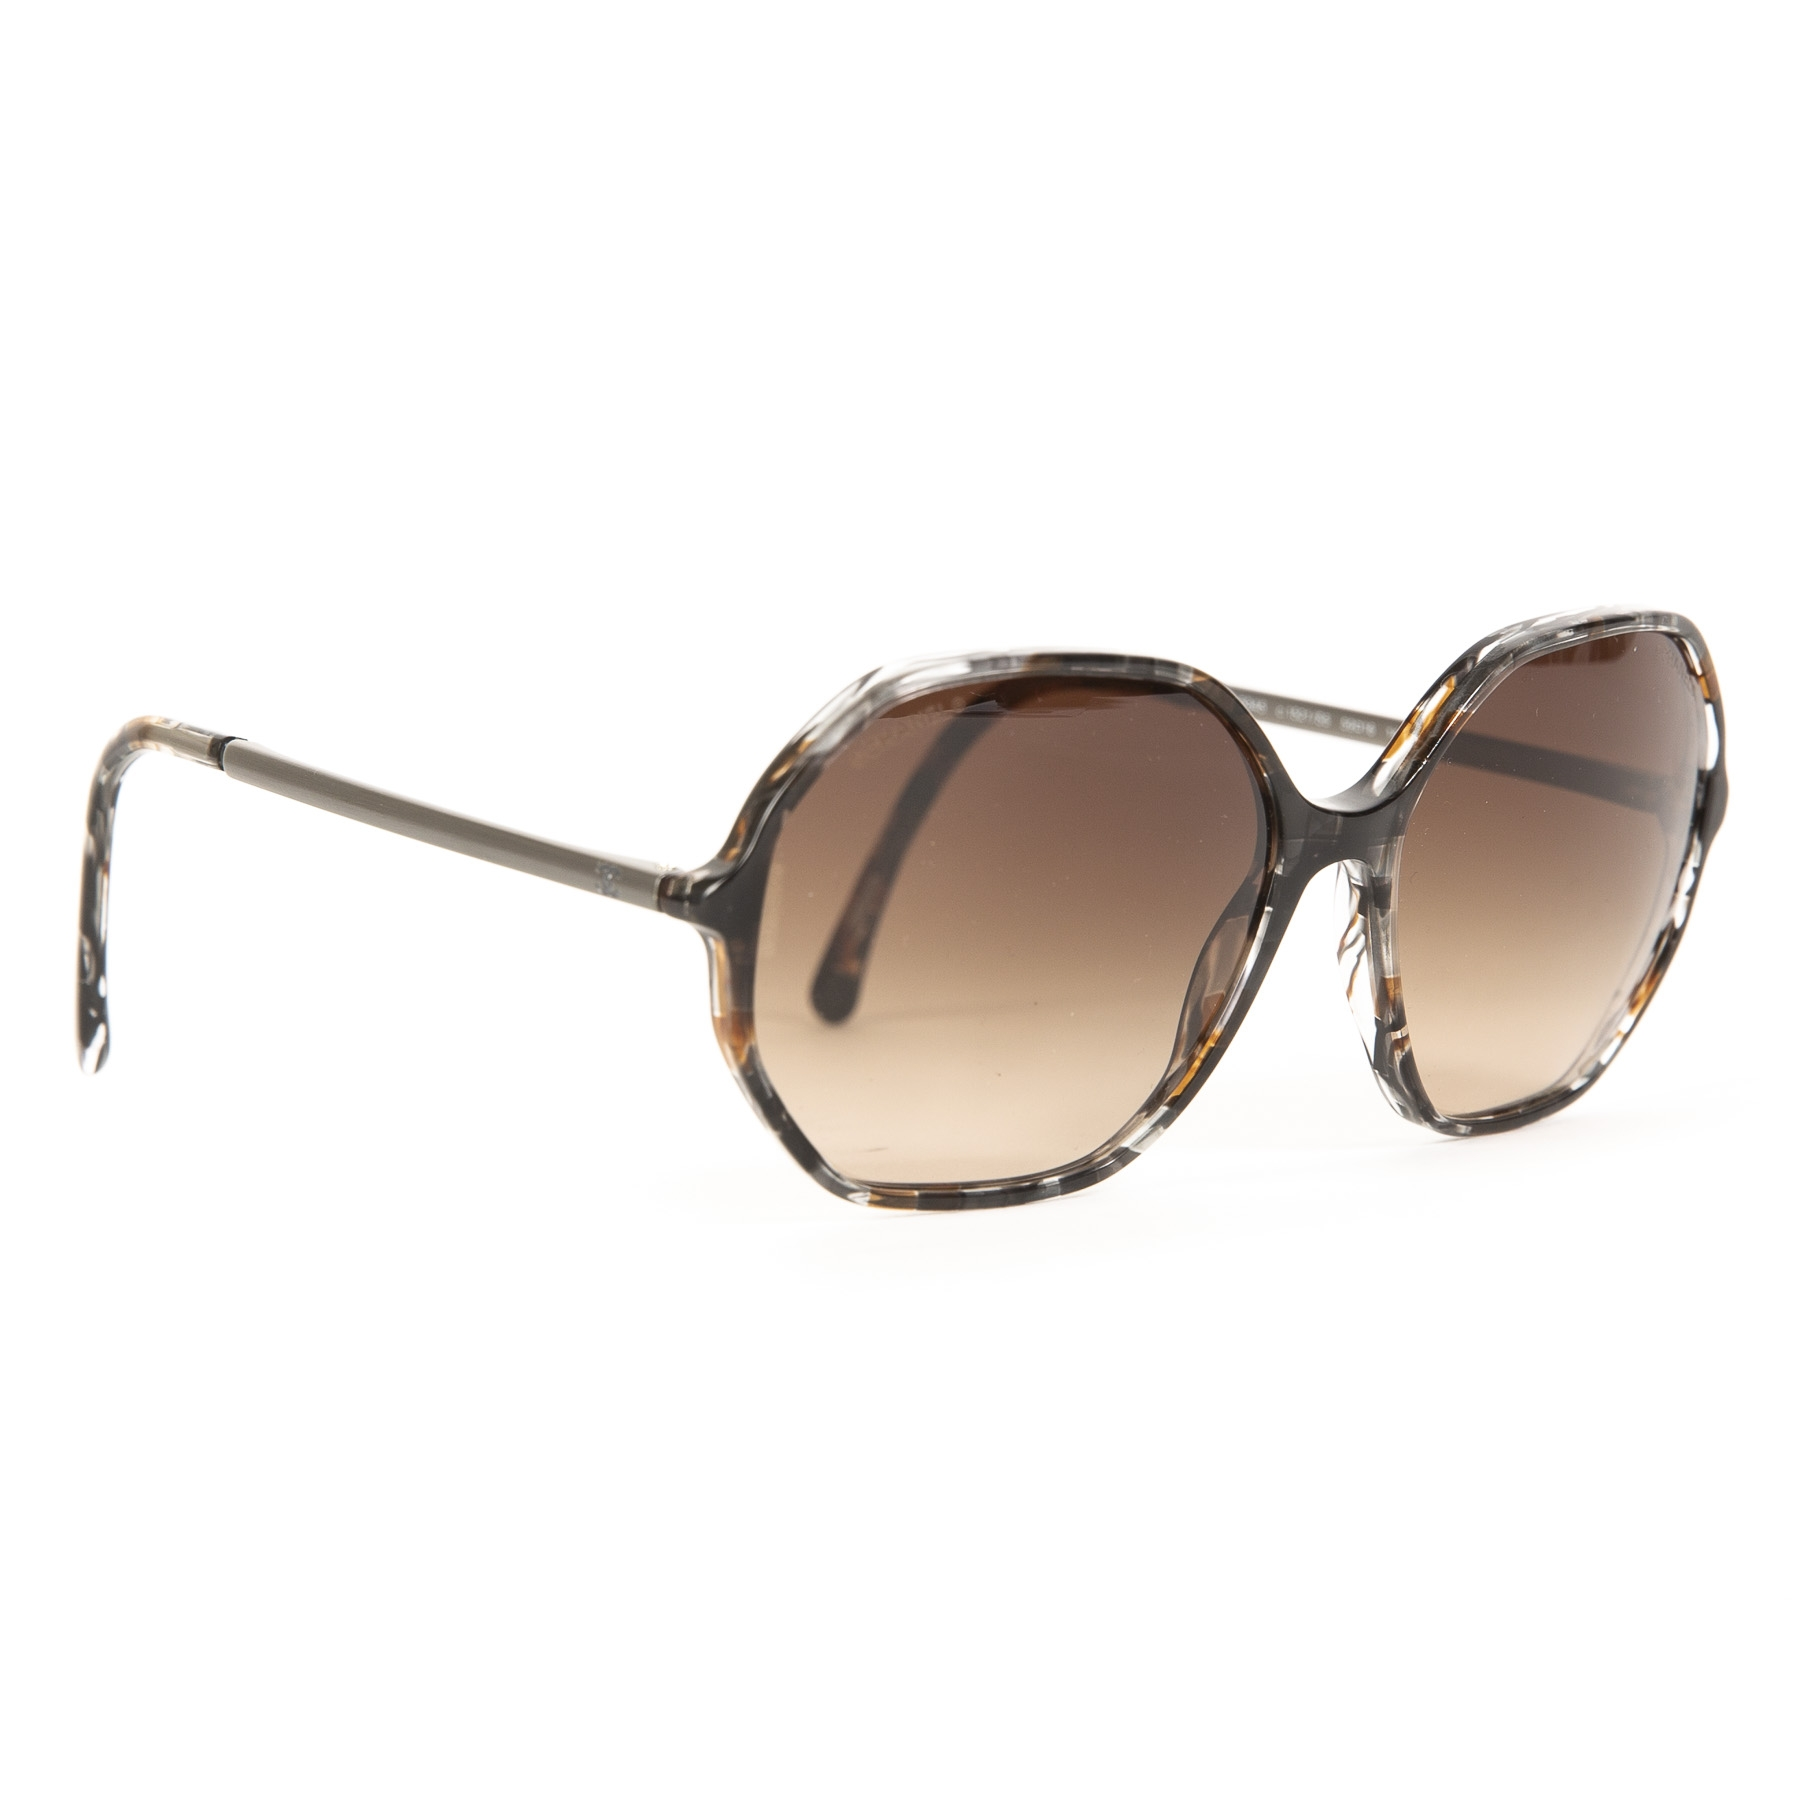 Authentic second-hand vintage Chanel Tortoise Havana Brown Sunglasses buy online webshop LabelLOV